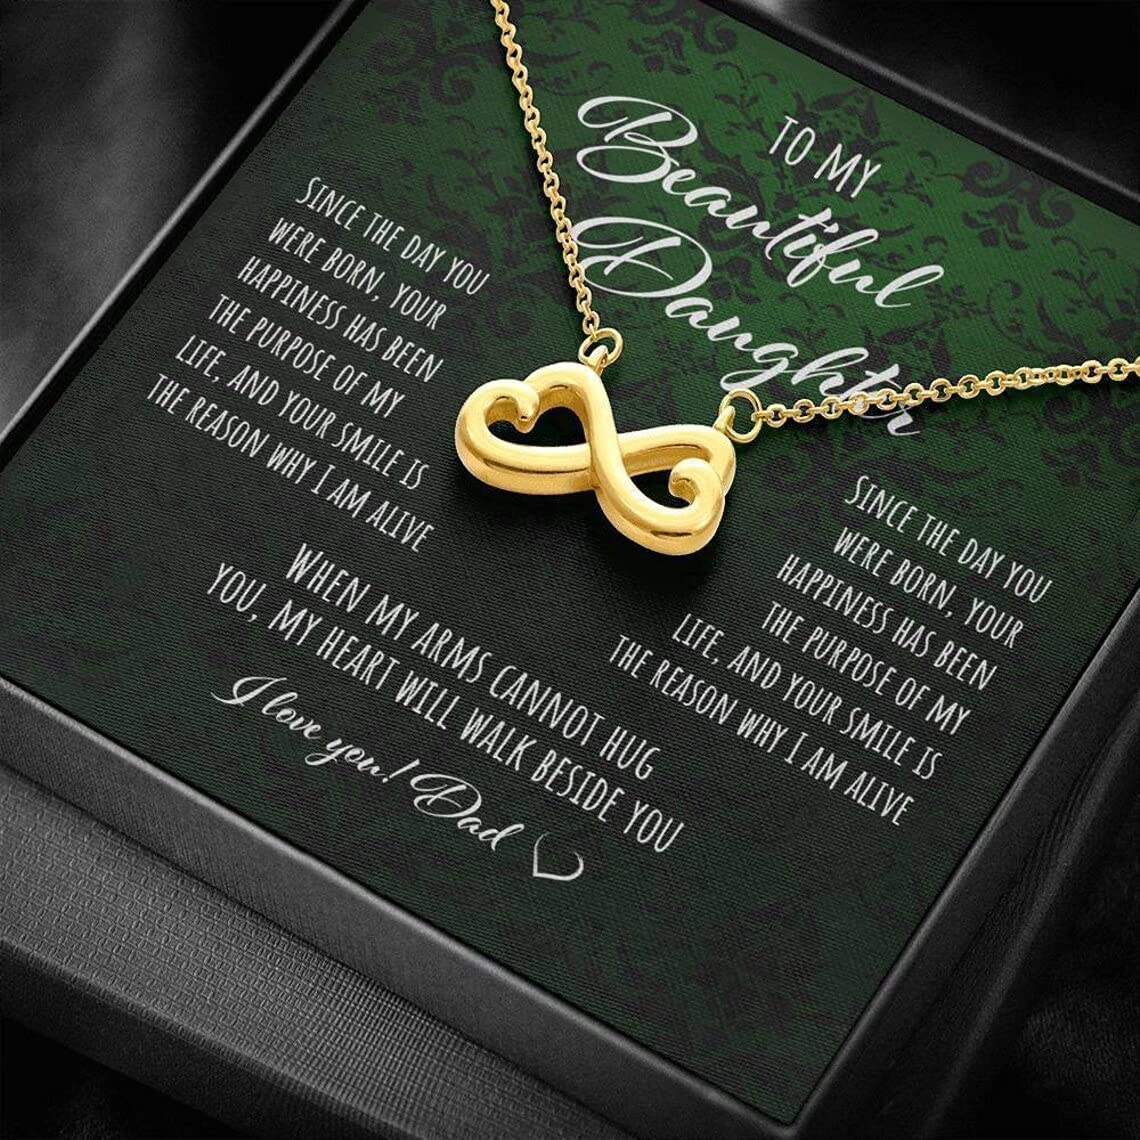 iWow Max 66% OFF Customized Daughter Gift from Dad Selling and selling Necklace Heart Infinity